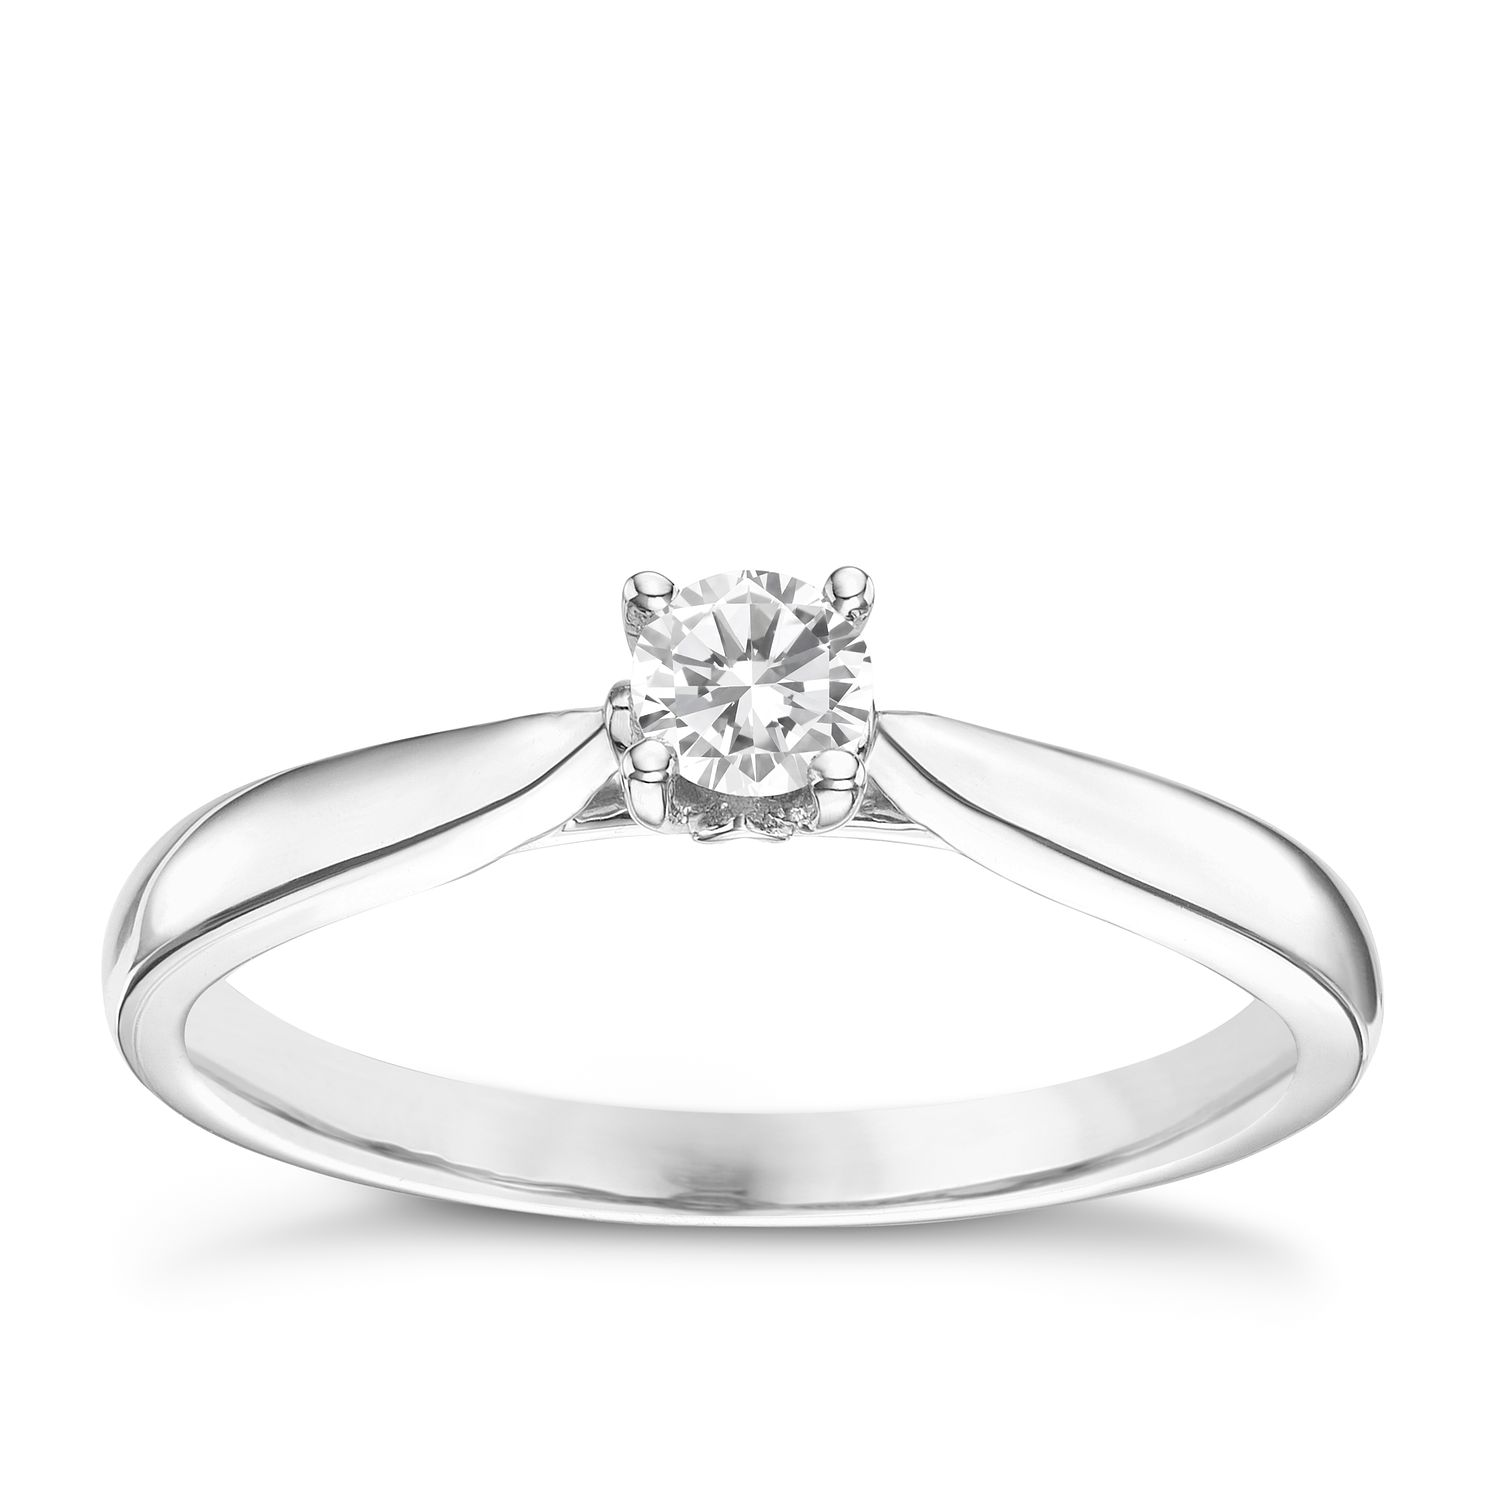 9ct White Gold 0.20ct Diamond Solitare Ring - Product number 6248330